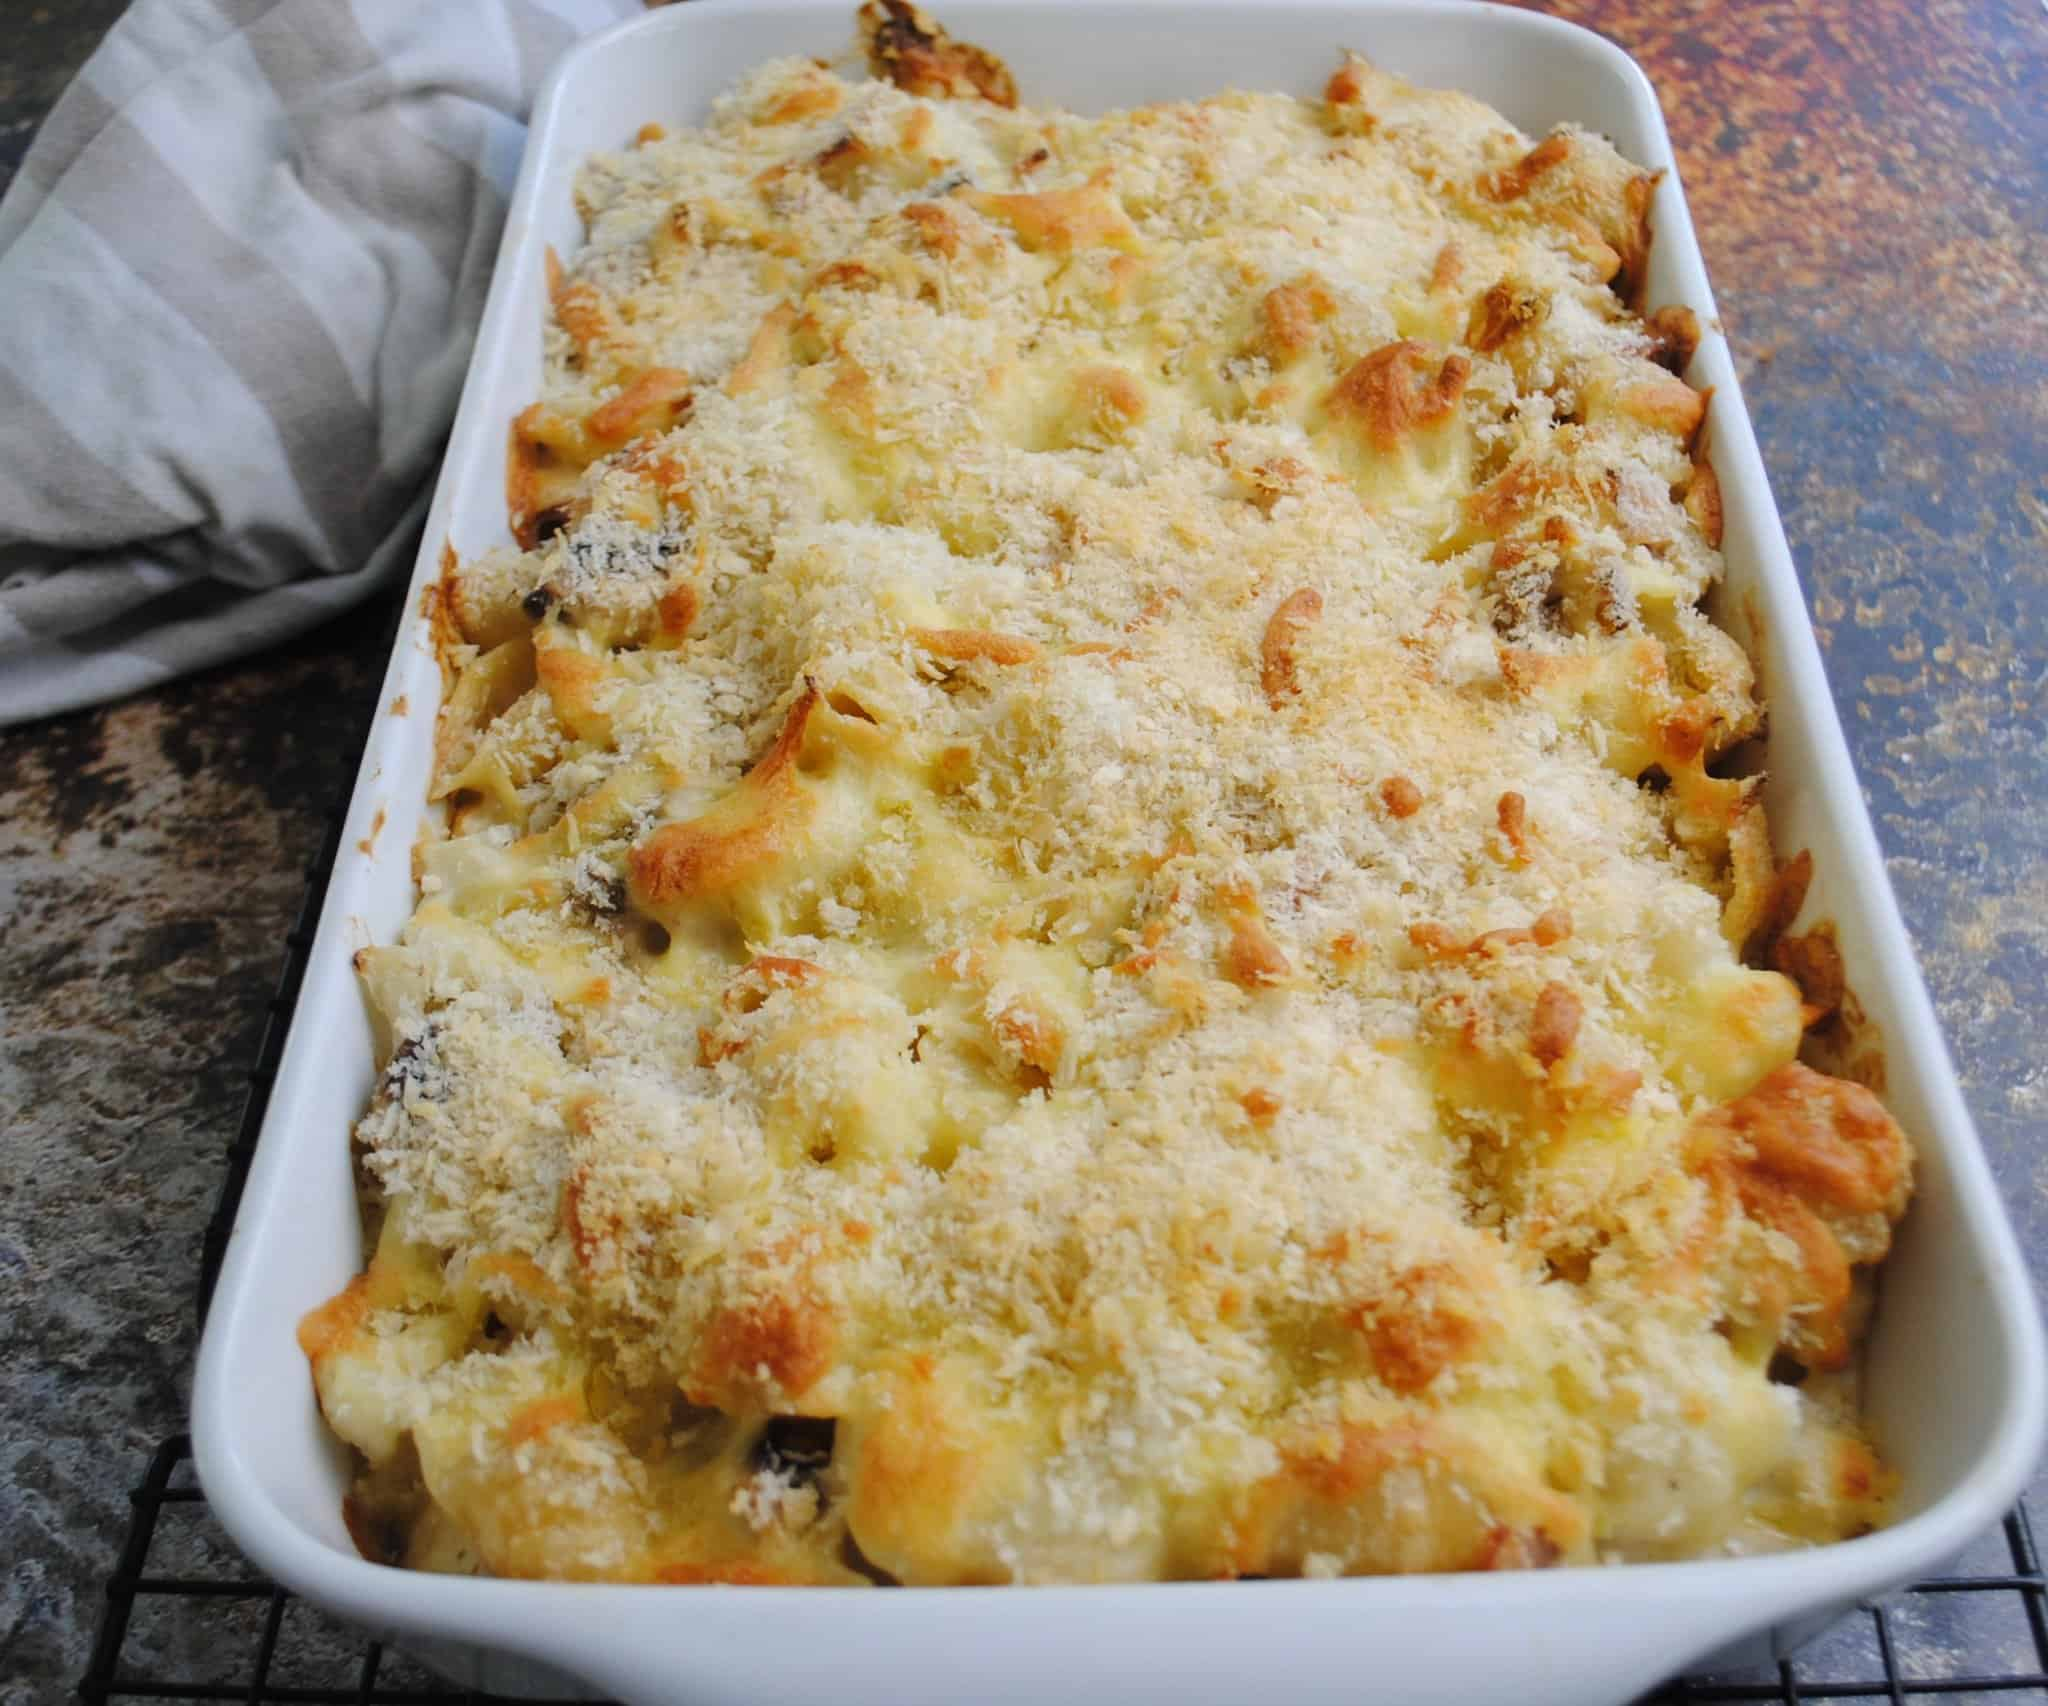 Cauliflower pasta bake with bacon and mushrooms - cooked to golden brown in a white baking dish